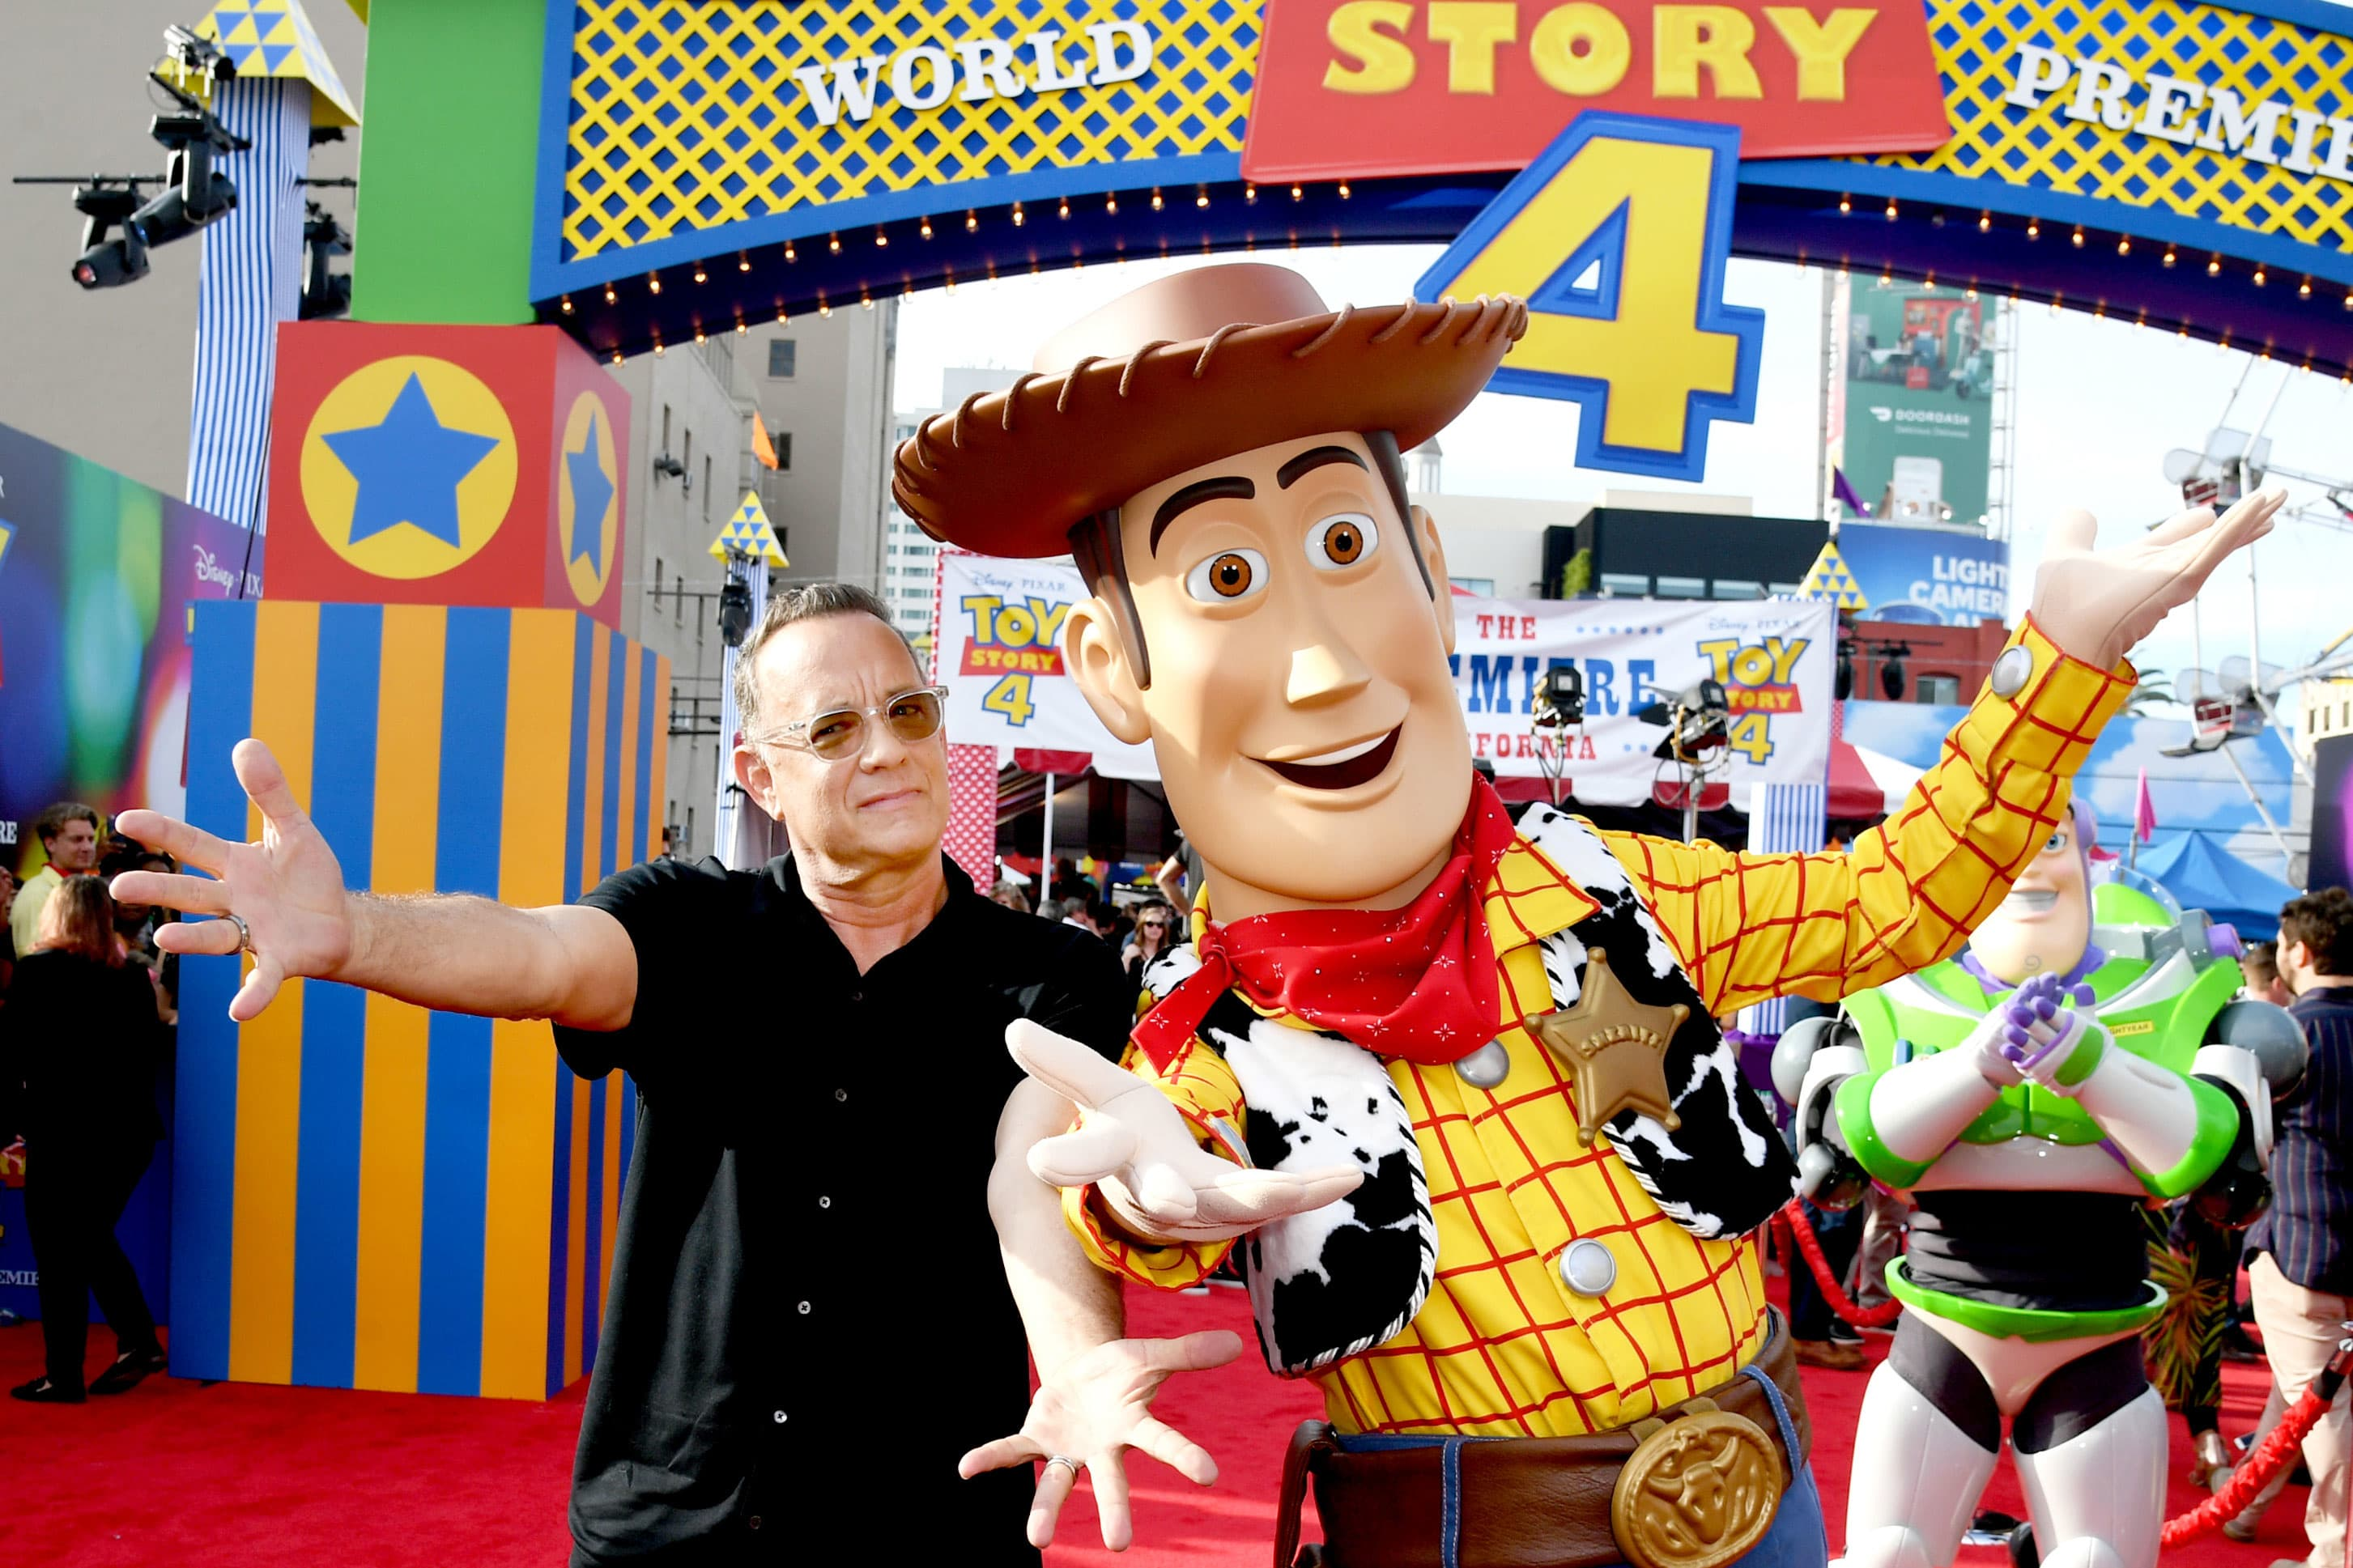 'Toy Story 4' tops $1 billion globally, becomes 5th Disney movie to hit billion-dollar benchmark this year